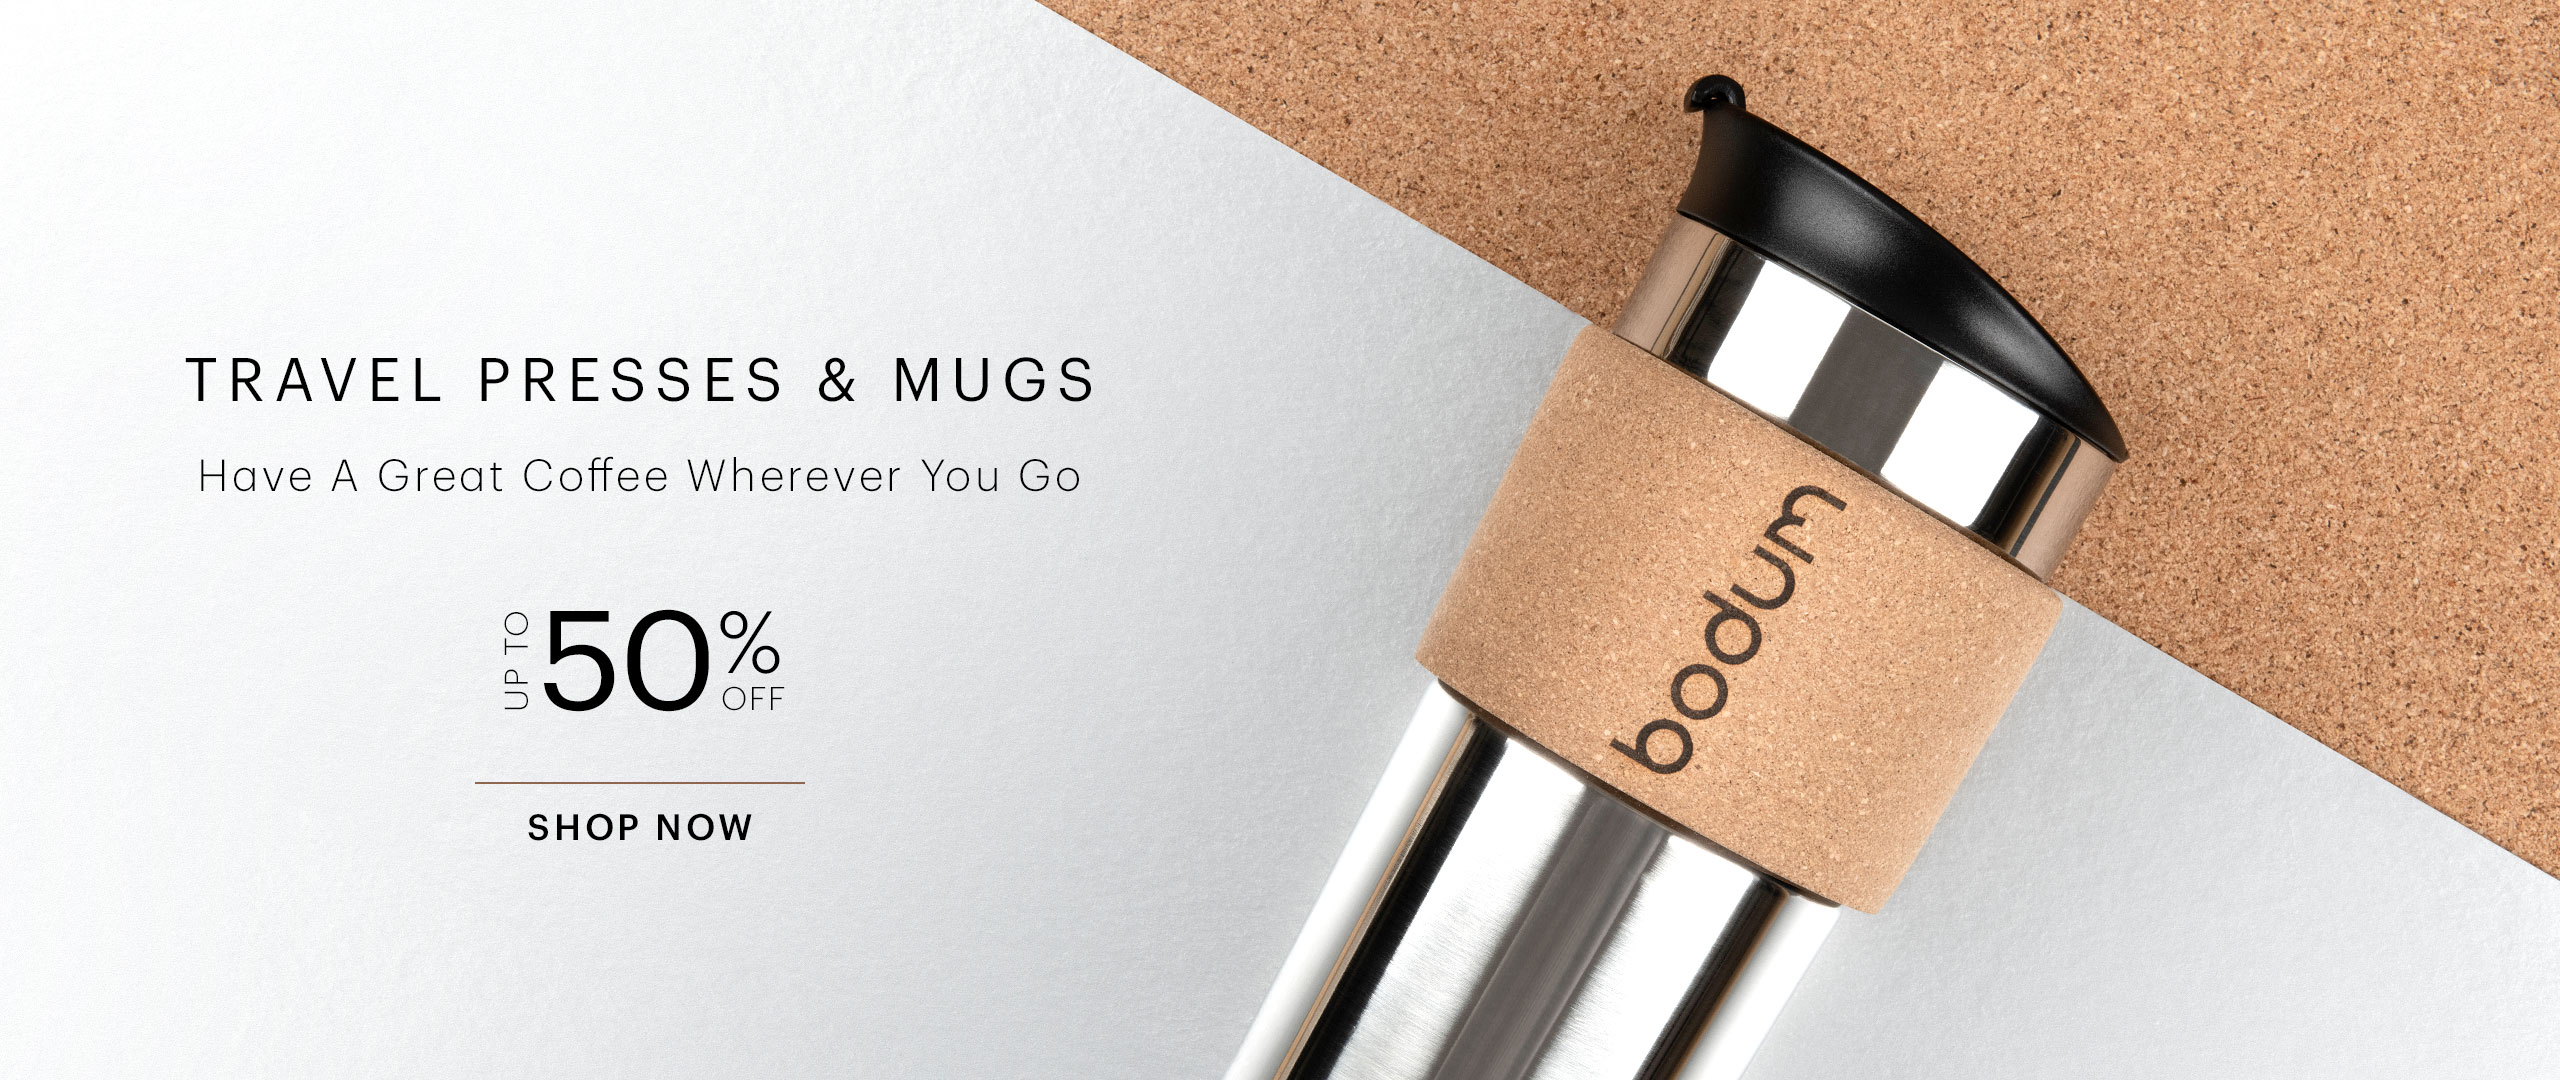 BEU [EN] - Travel Press & Mug